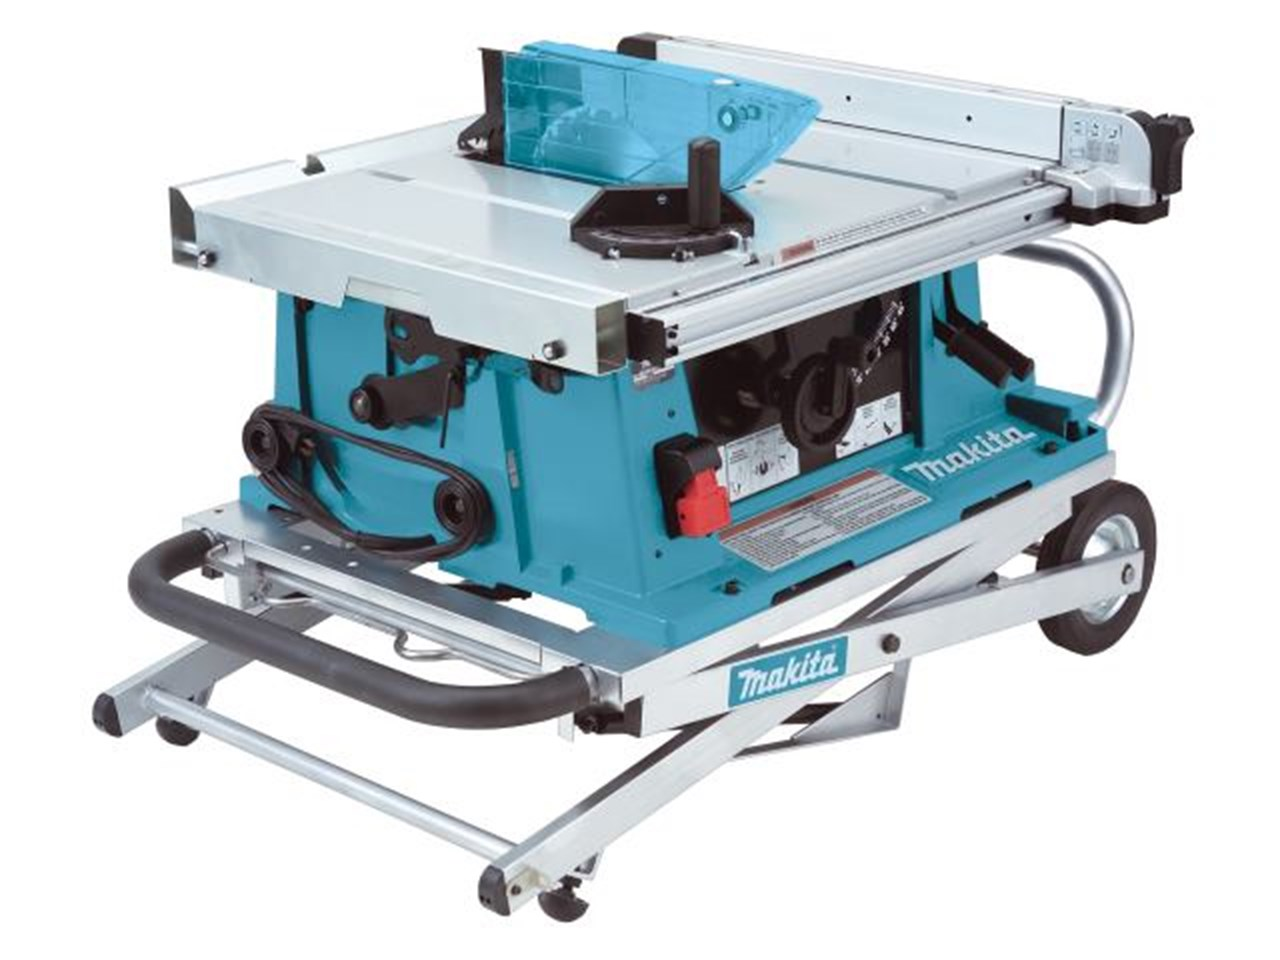 Makita 2704x2 240v table saw and stand greentooth Images